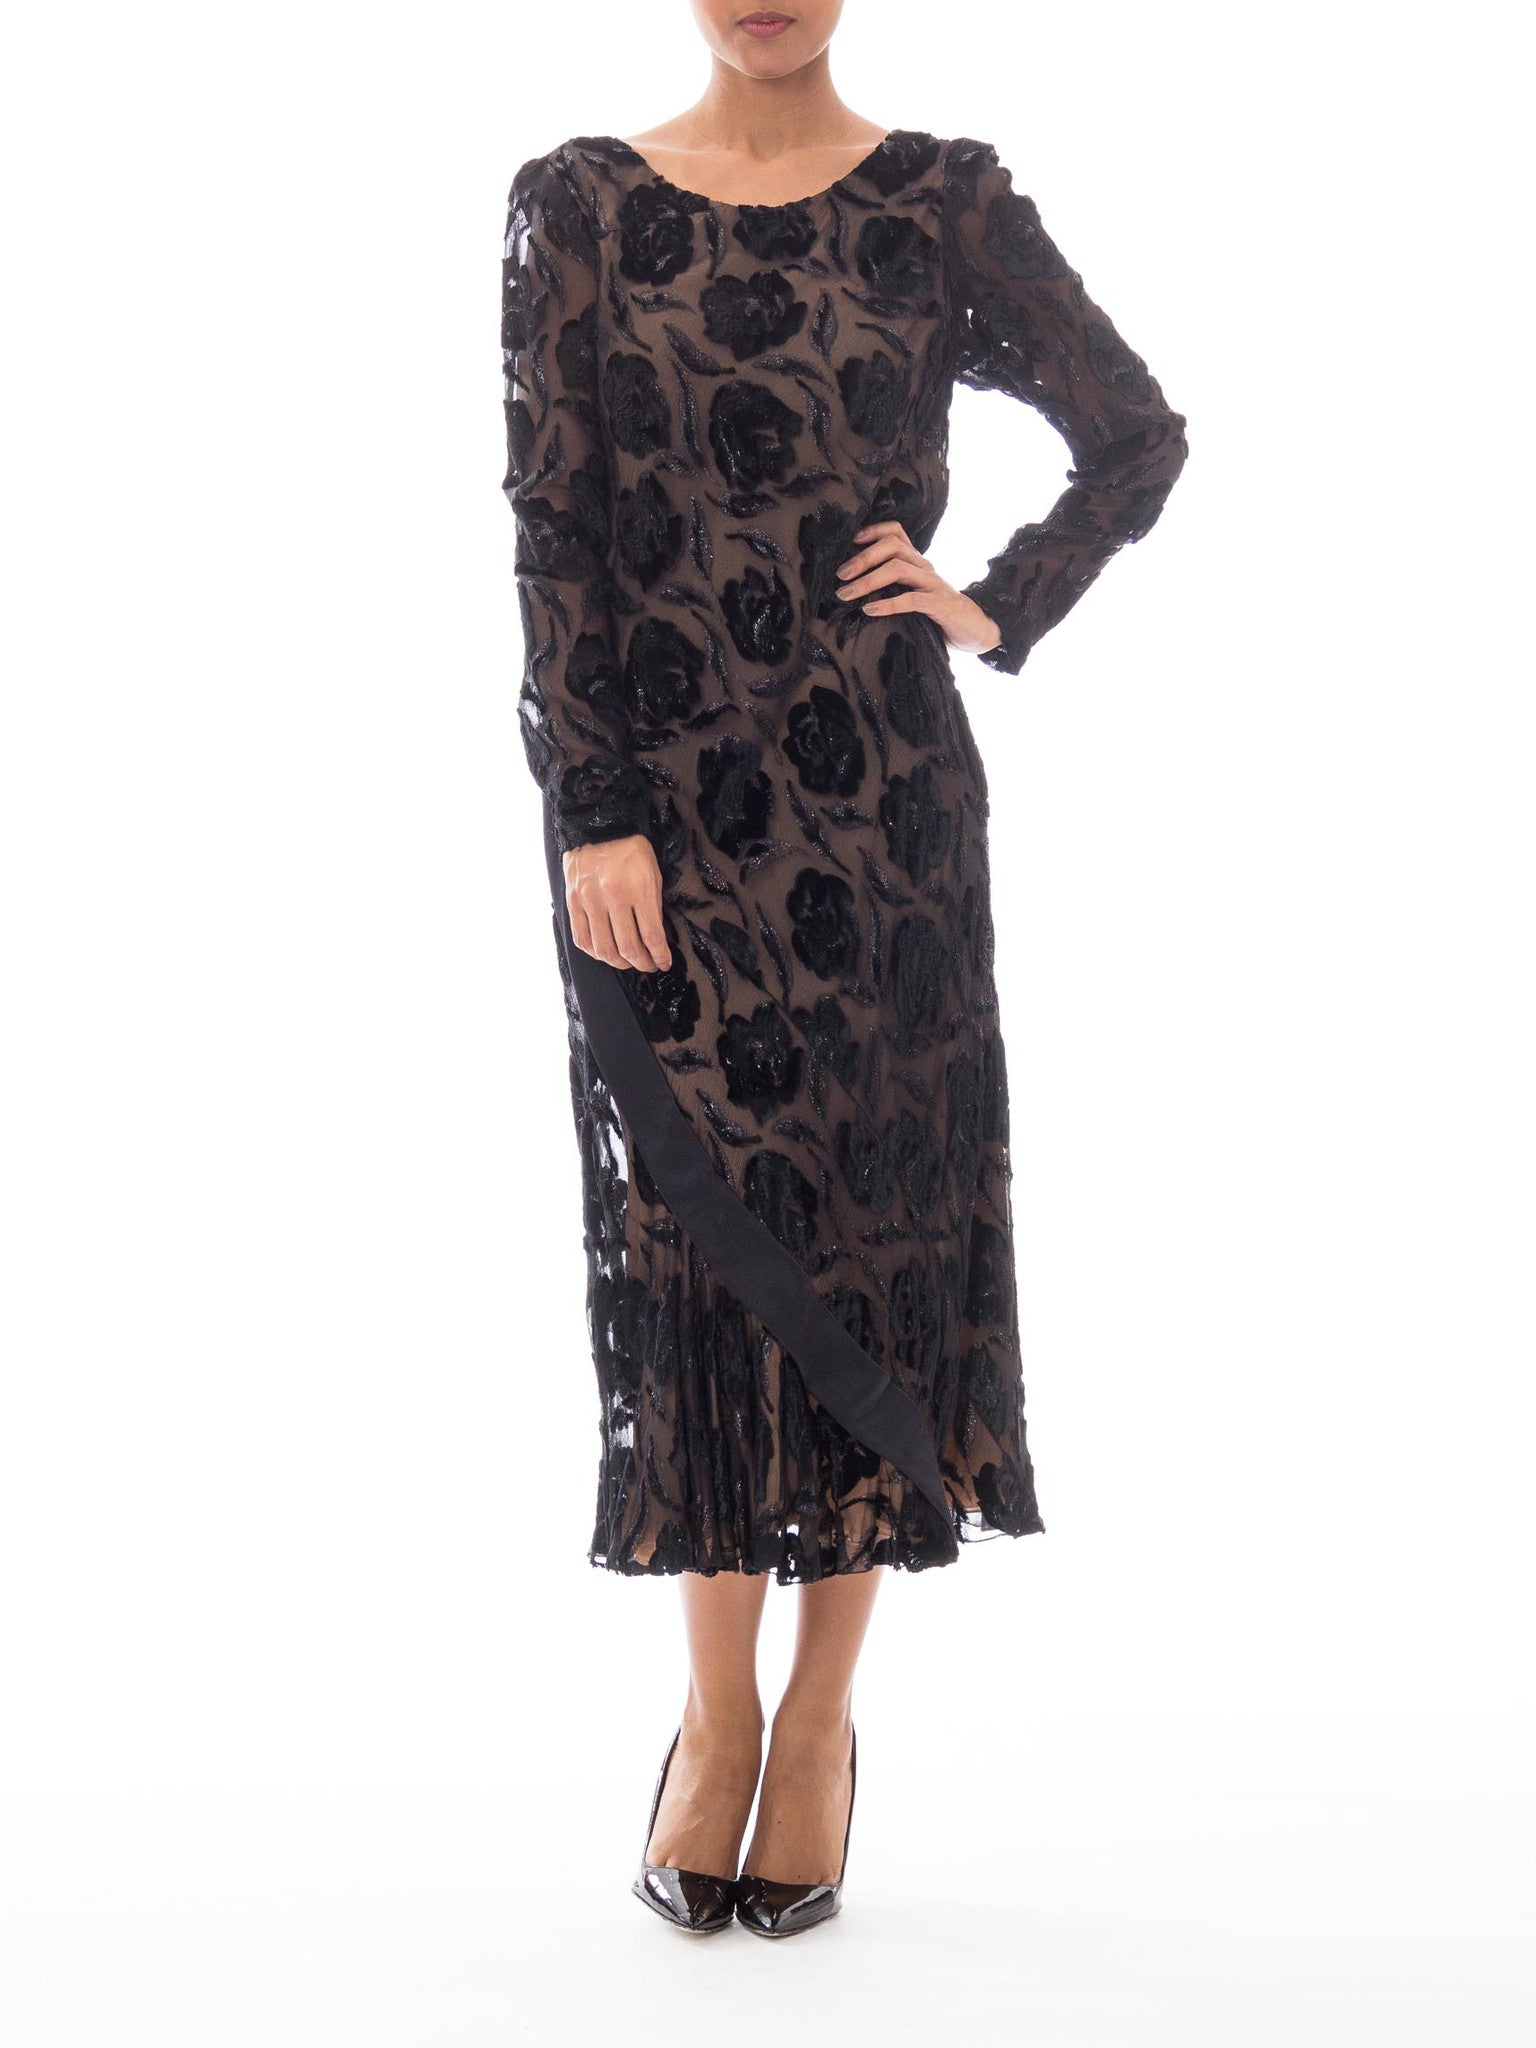 1970S Stavropoulos Black Bias Cut Silk Lurex Burnout Velvet Cocktail Dress With Sleeves